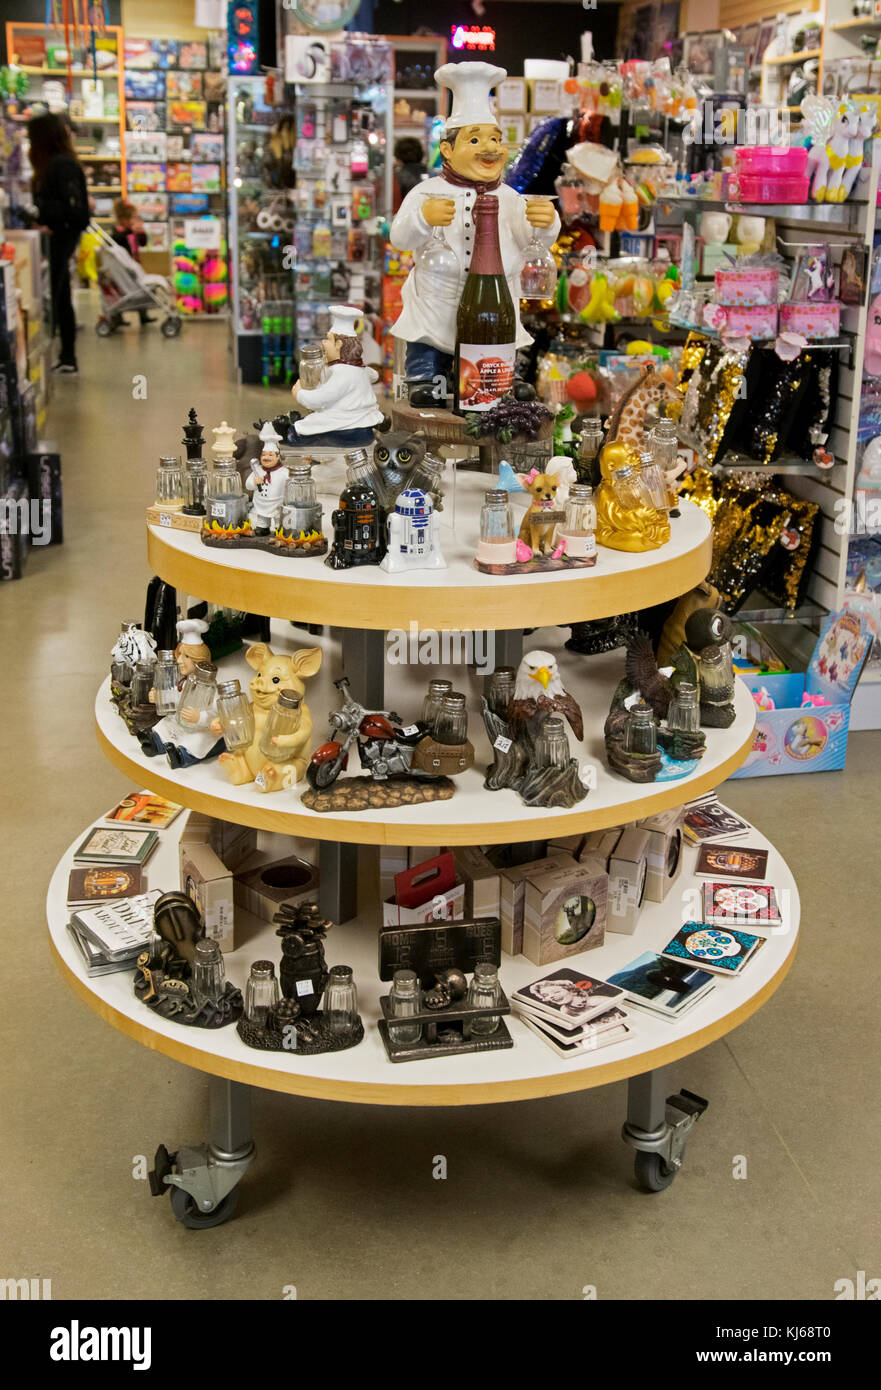 Various clever ceramic salt and pepper shakers for sale at Gizmos & Gadgets at the Tanger Outlet Mall in Deer - Stock Image